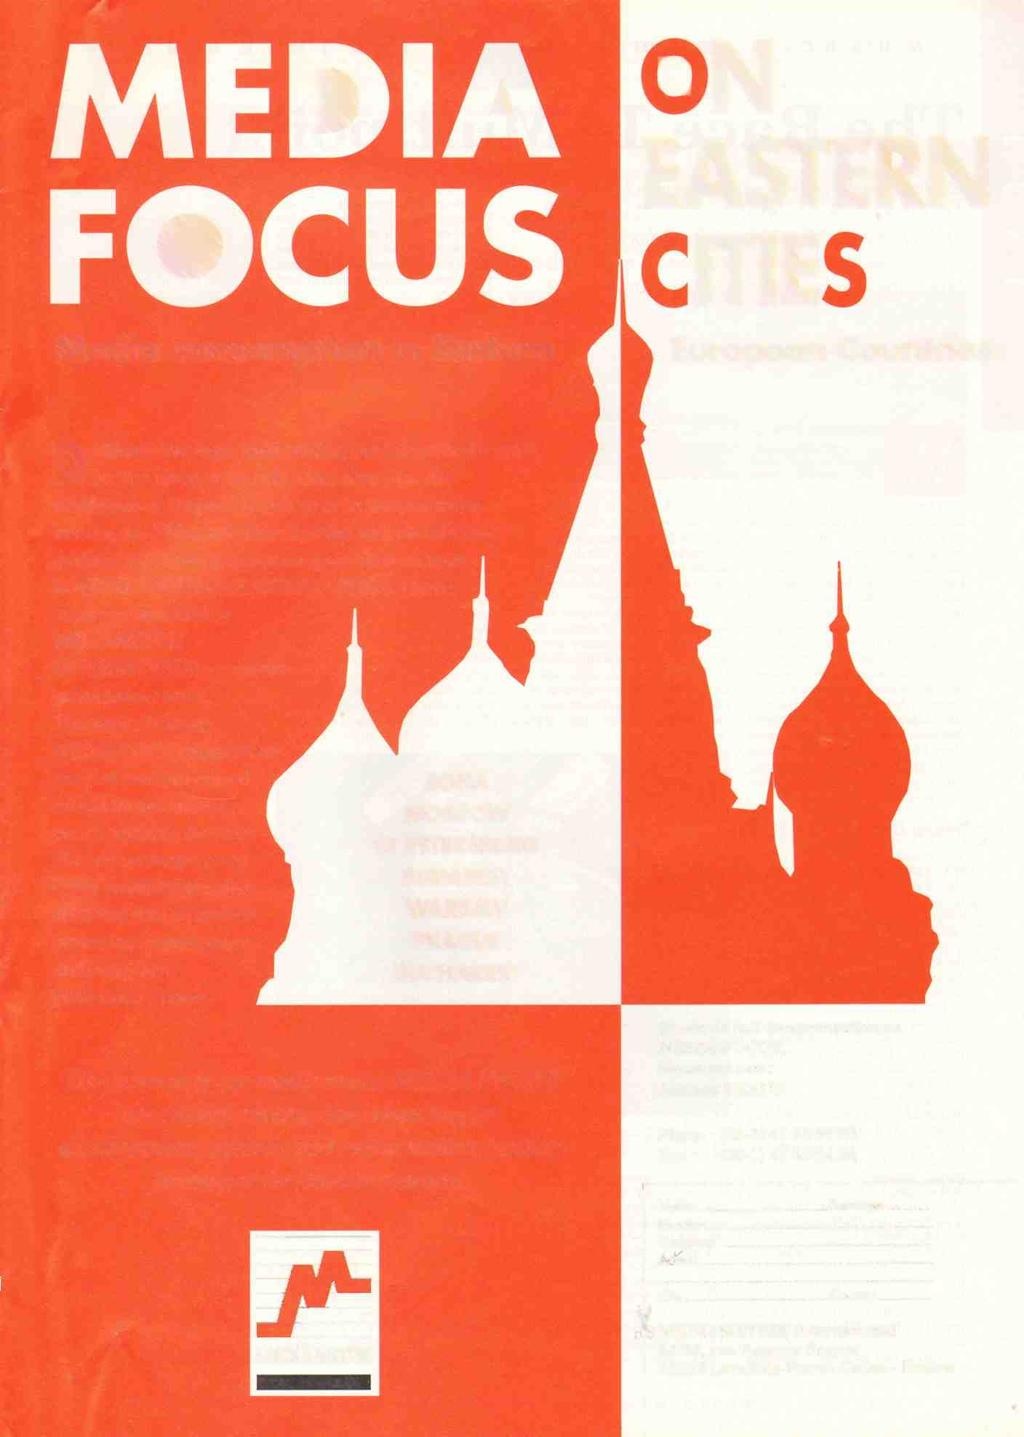 AmericanRadioHistory.Com IVIED A FOCUS Media consumption in Eastern ON EASTERN CITIES European Countries Do Muscovites begin their working day before the French?